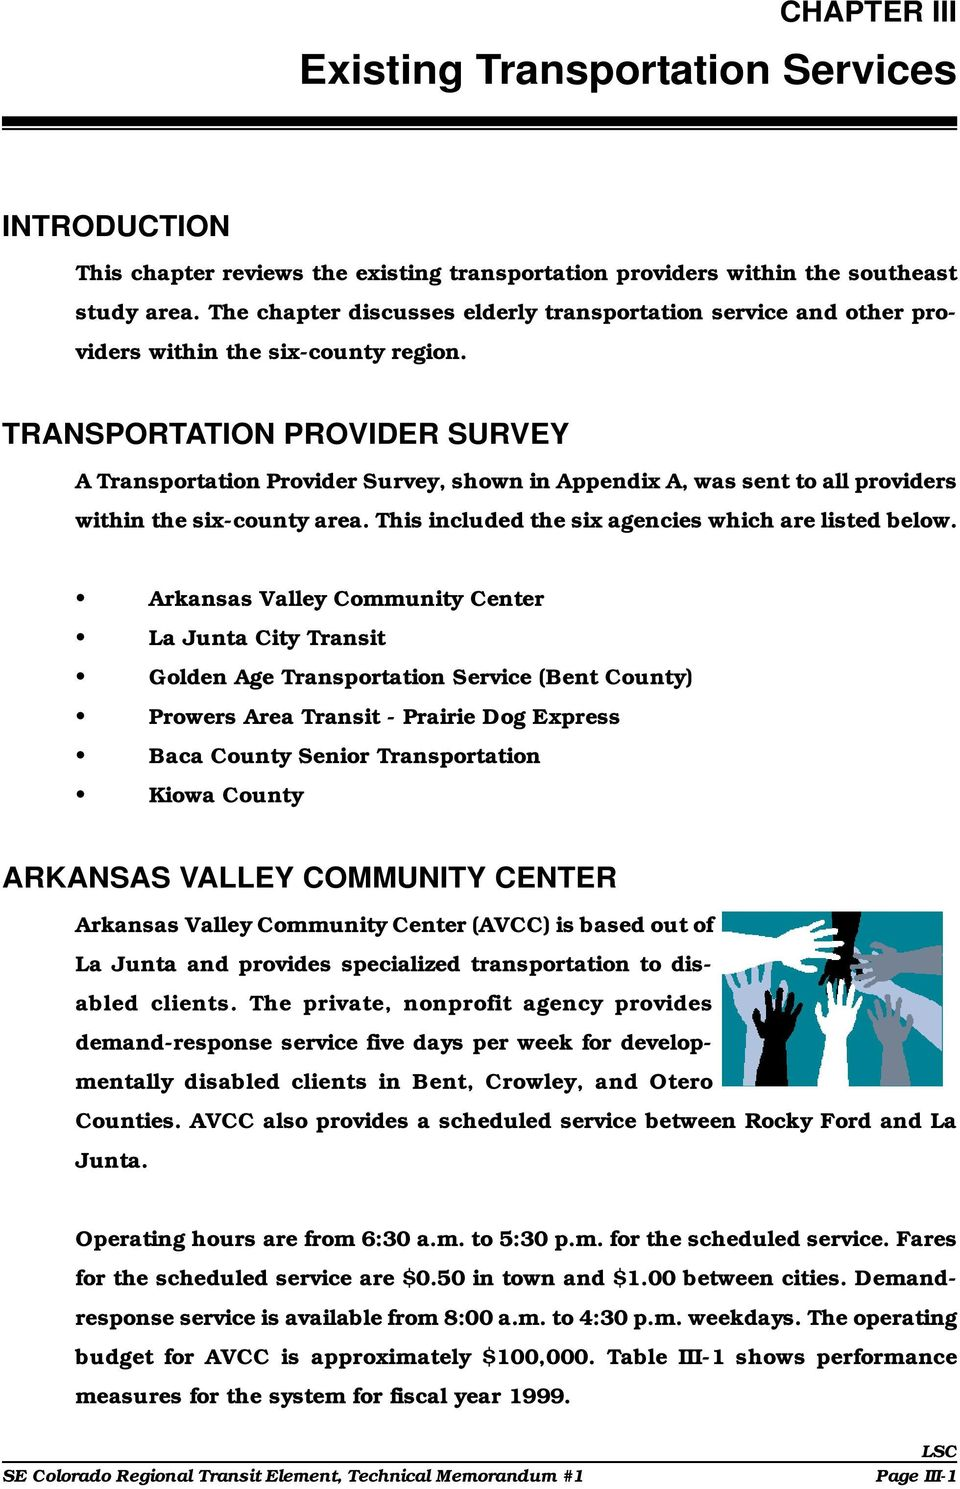 TRANSPORTATION PROVIDER SURVEY A Transportation Provider Survey, shown in Appendix A, was sent to all providers within the six-county area. This included the six agencies which are listed below.